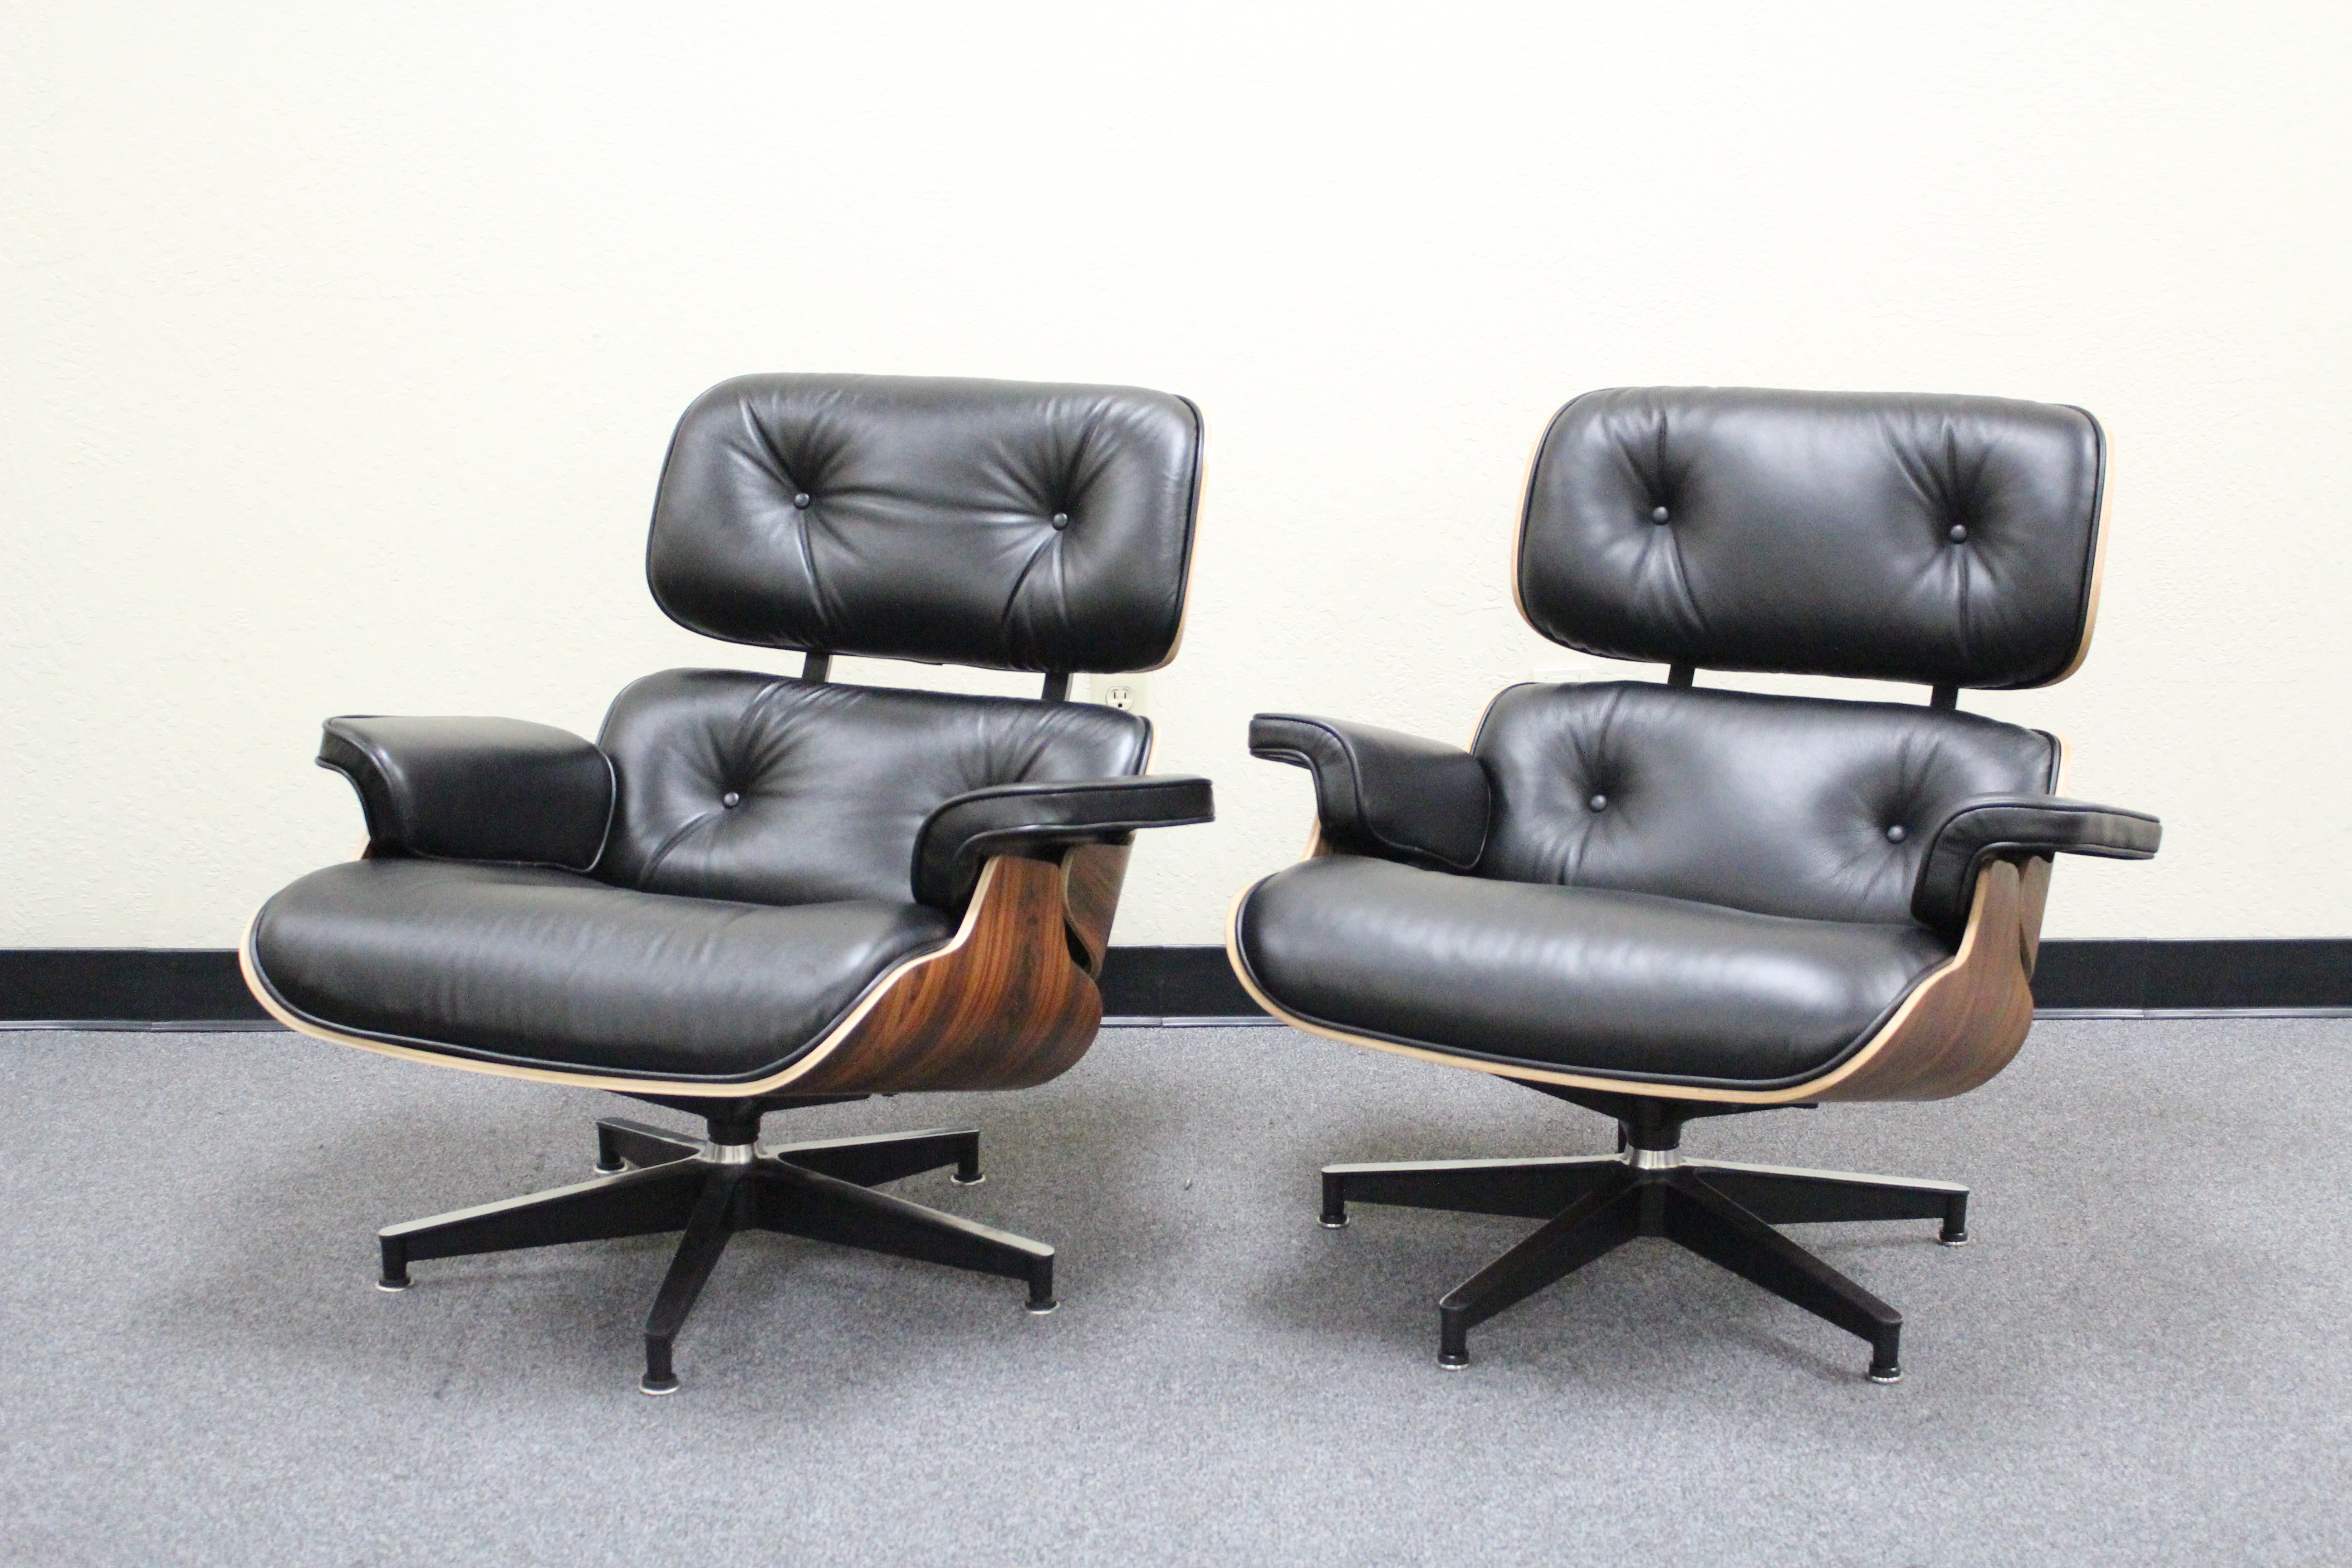 Eames lounge chair copies worth it page 59 styleforum for Grand repos replica